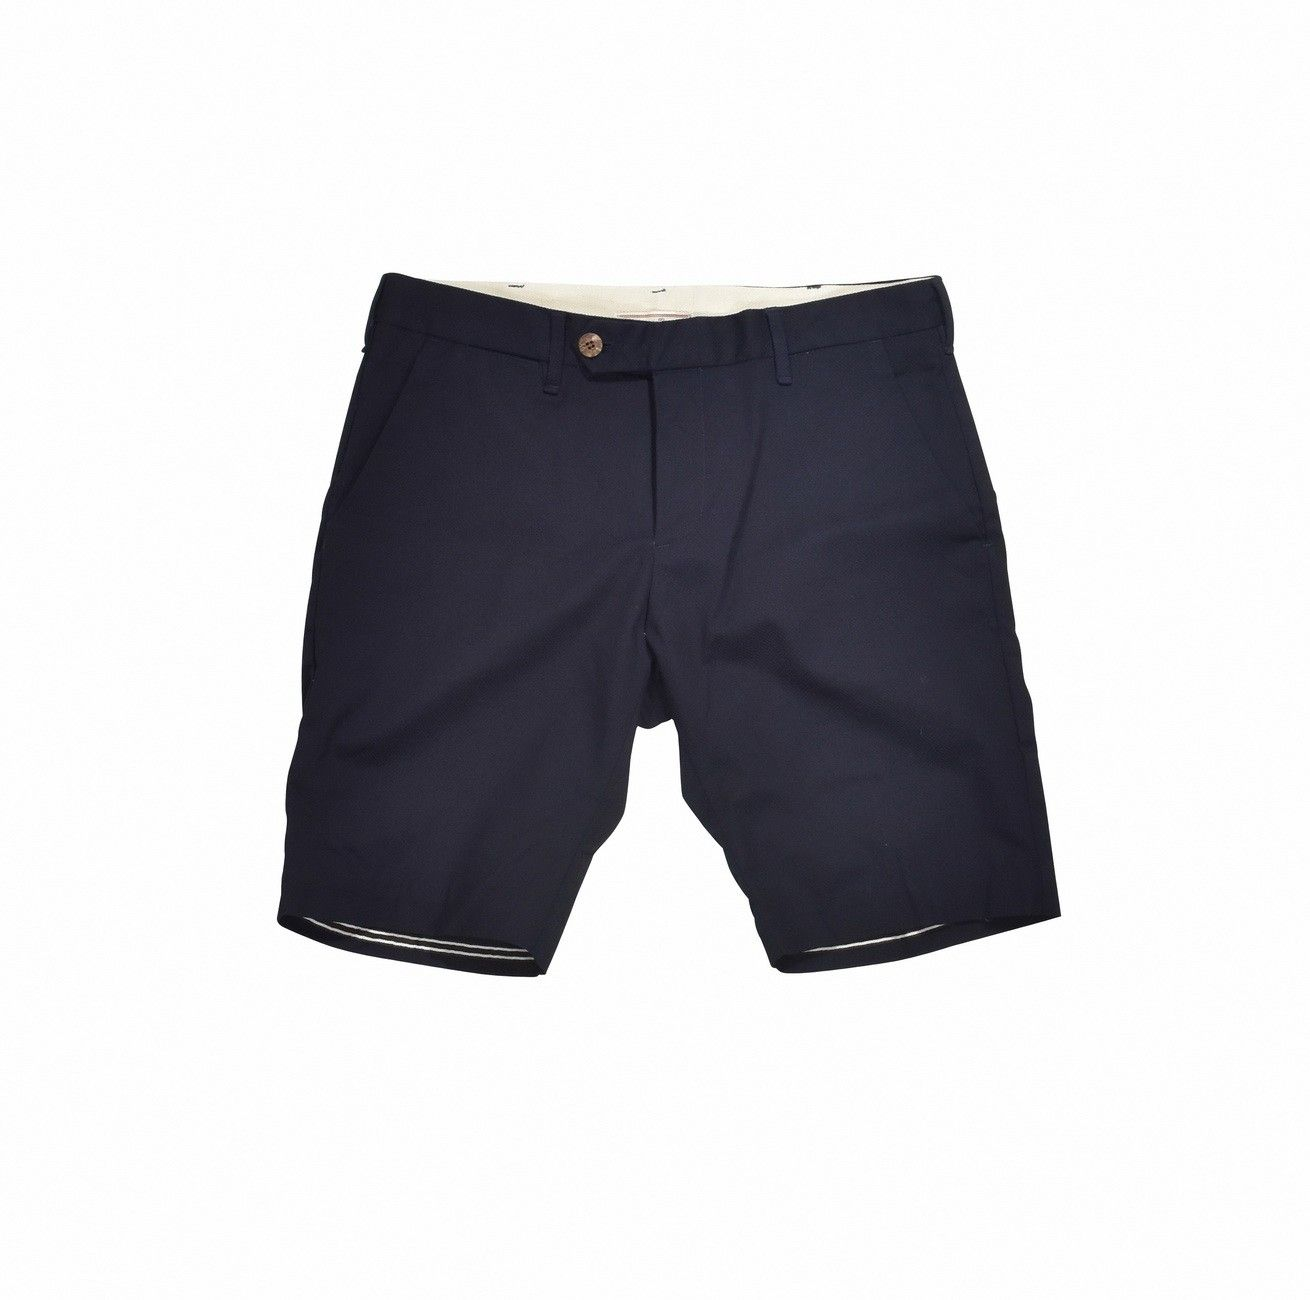 MYTHS - Herren Shorts - Bermuda - Navy